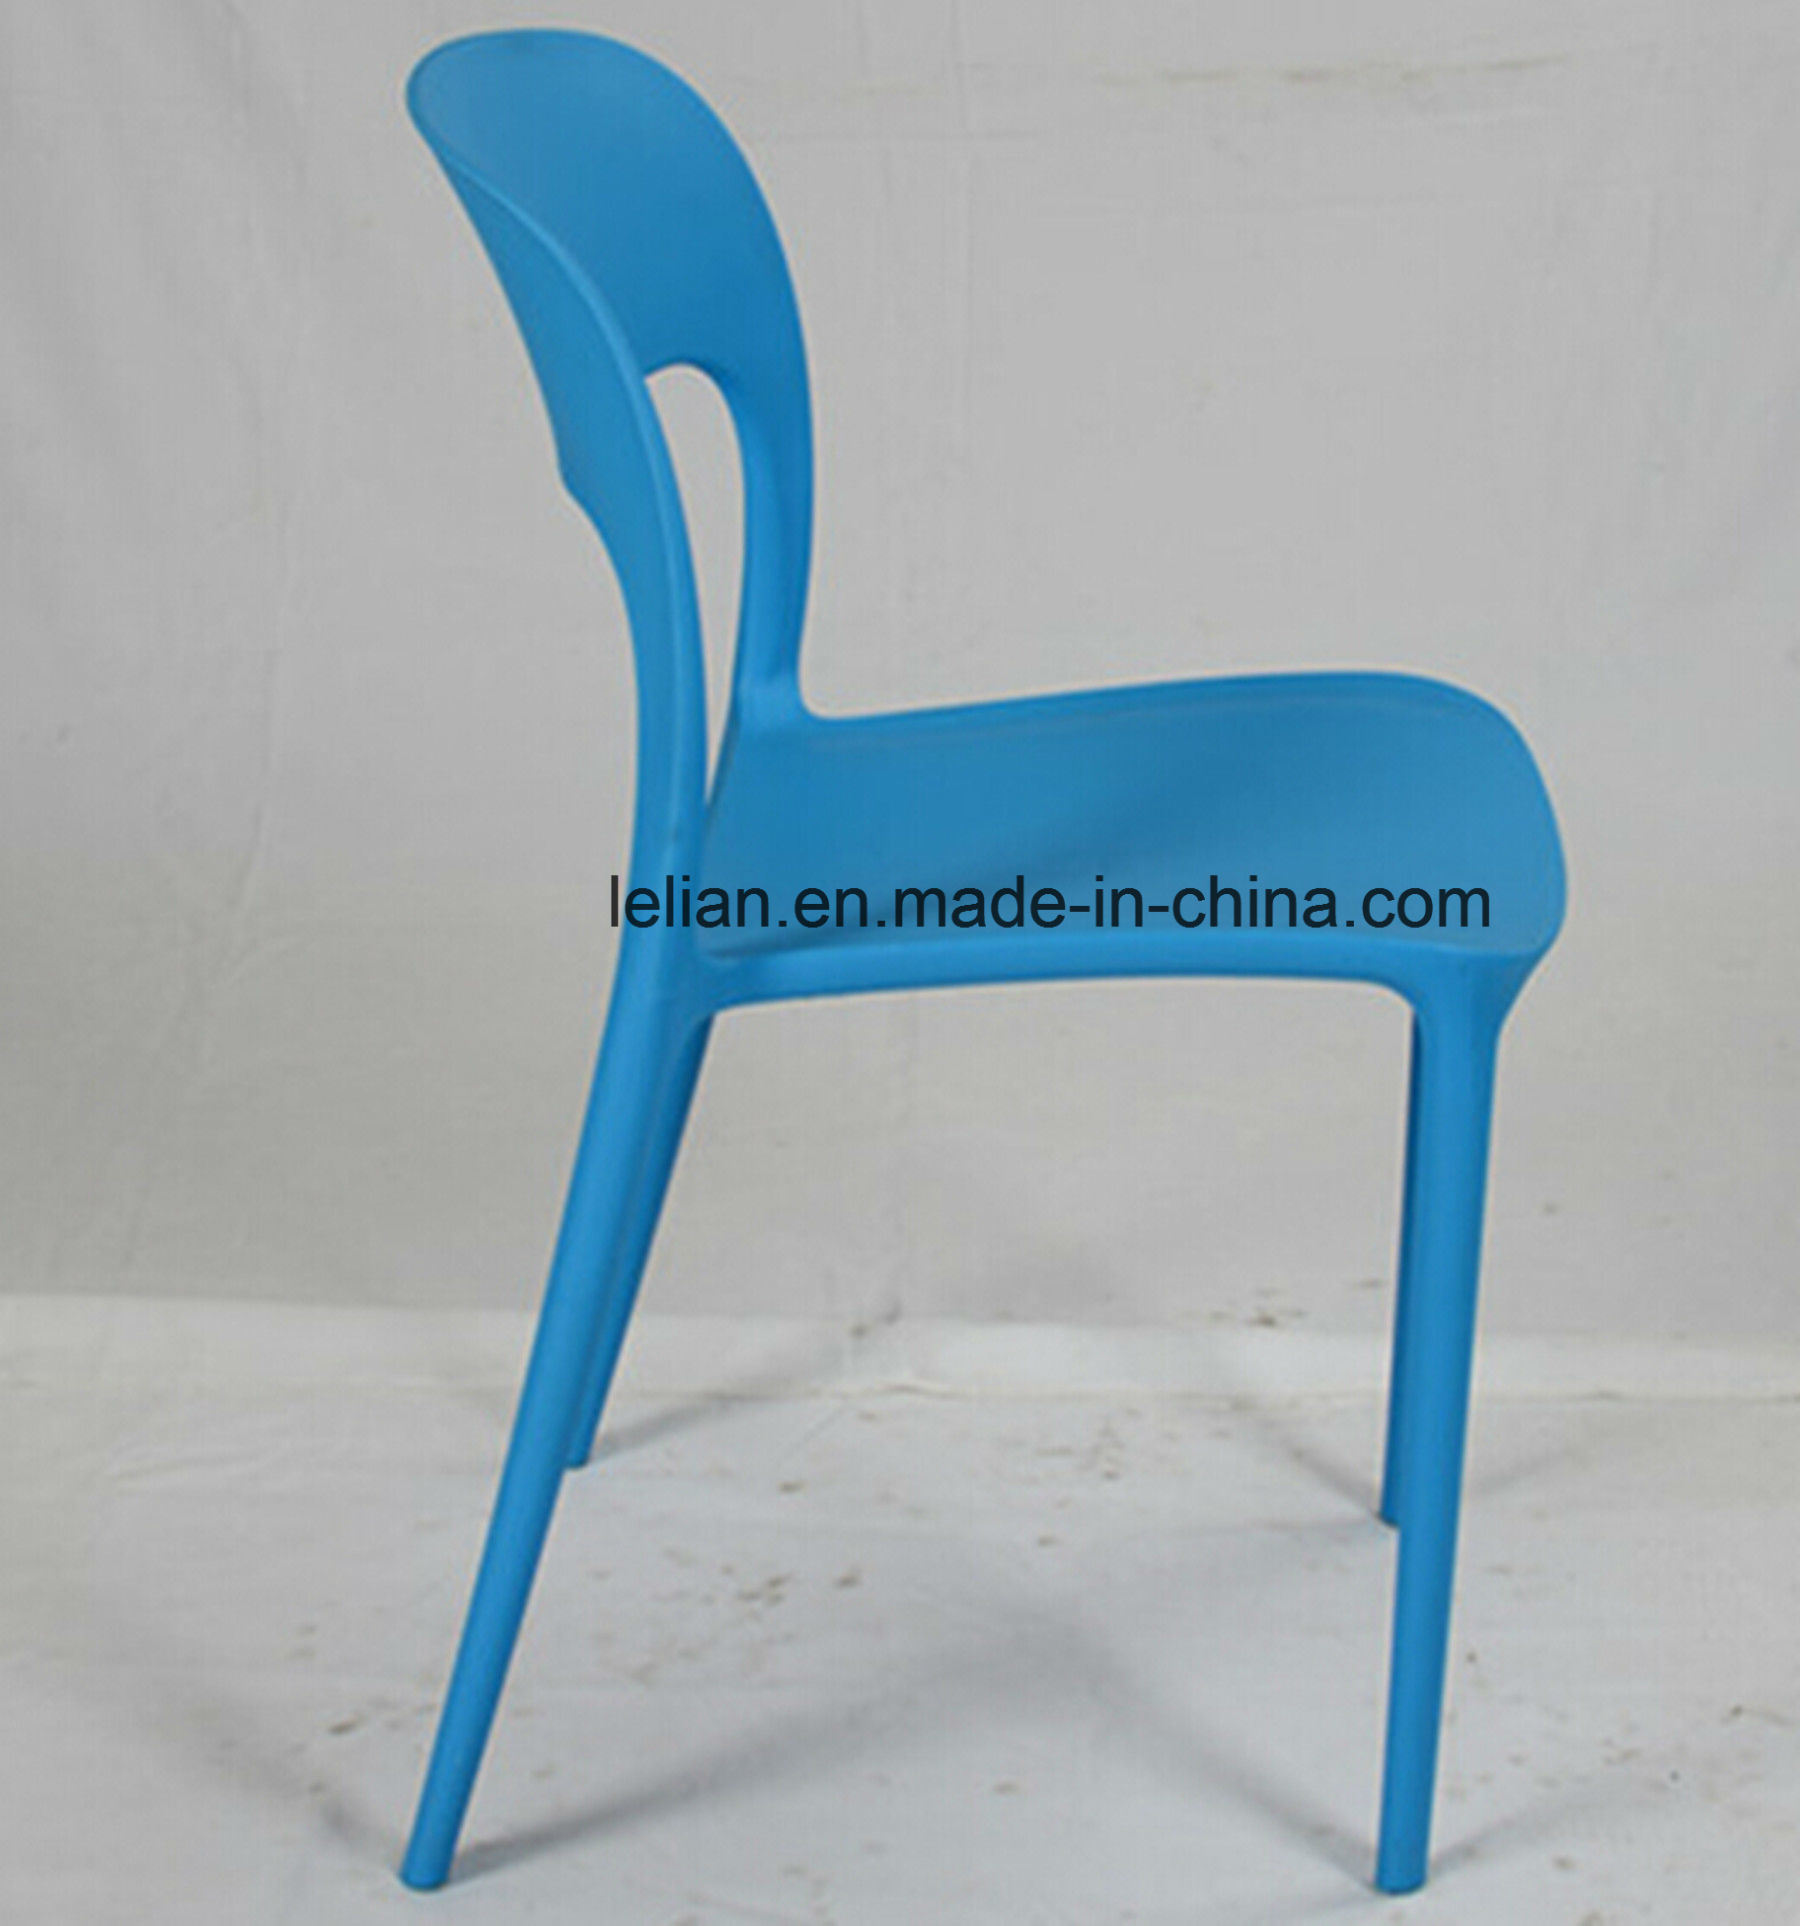 Moulded PP Plastic Dining Chair, Outdoor Side Chair (LL-0063)